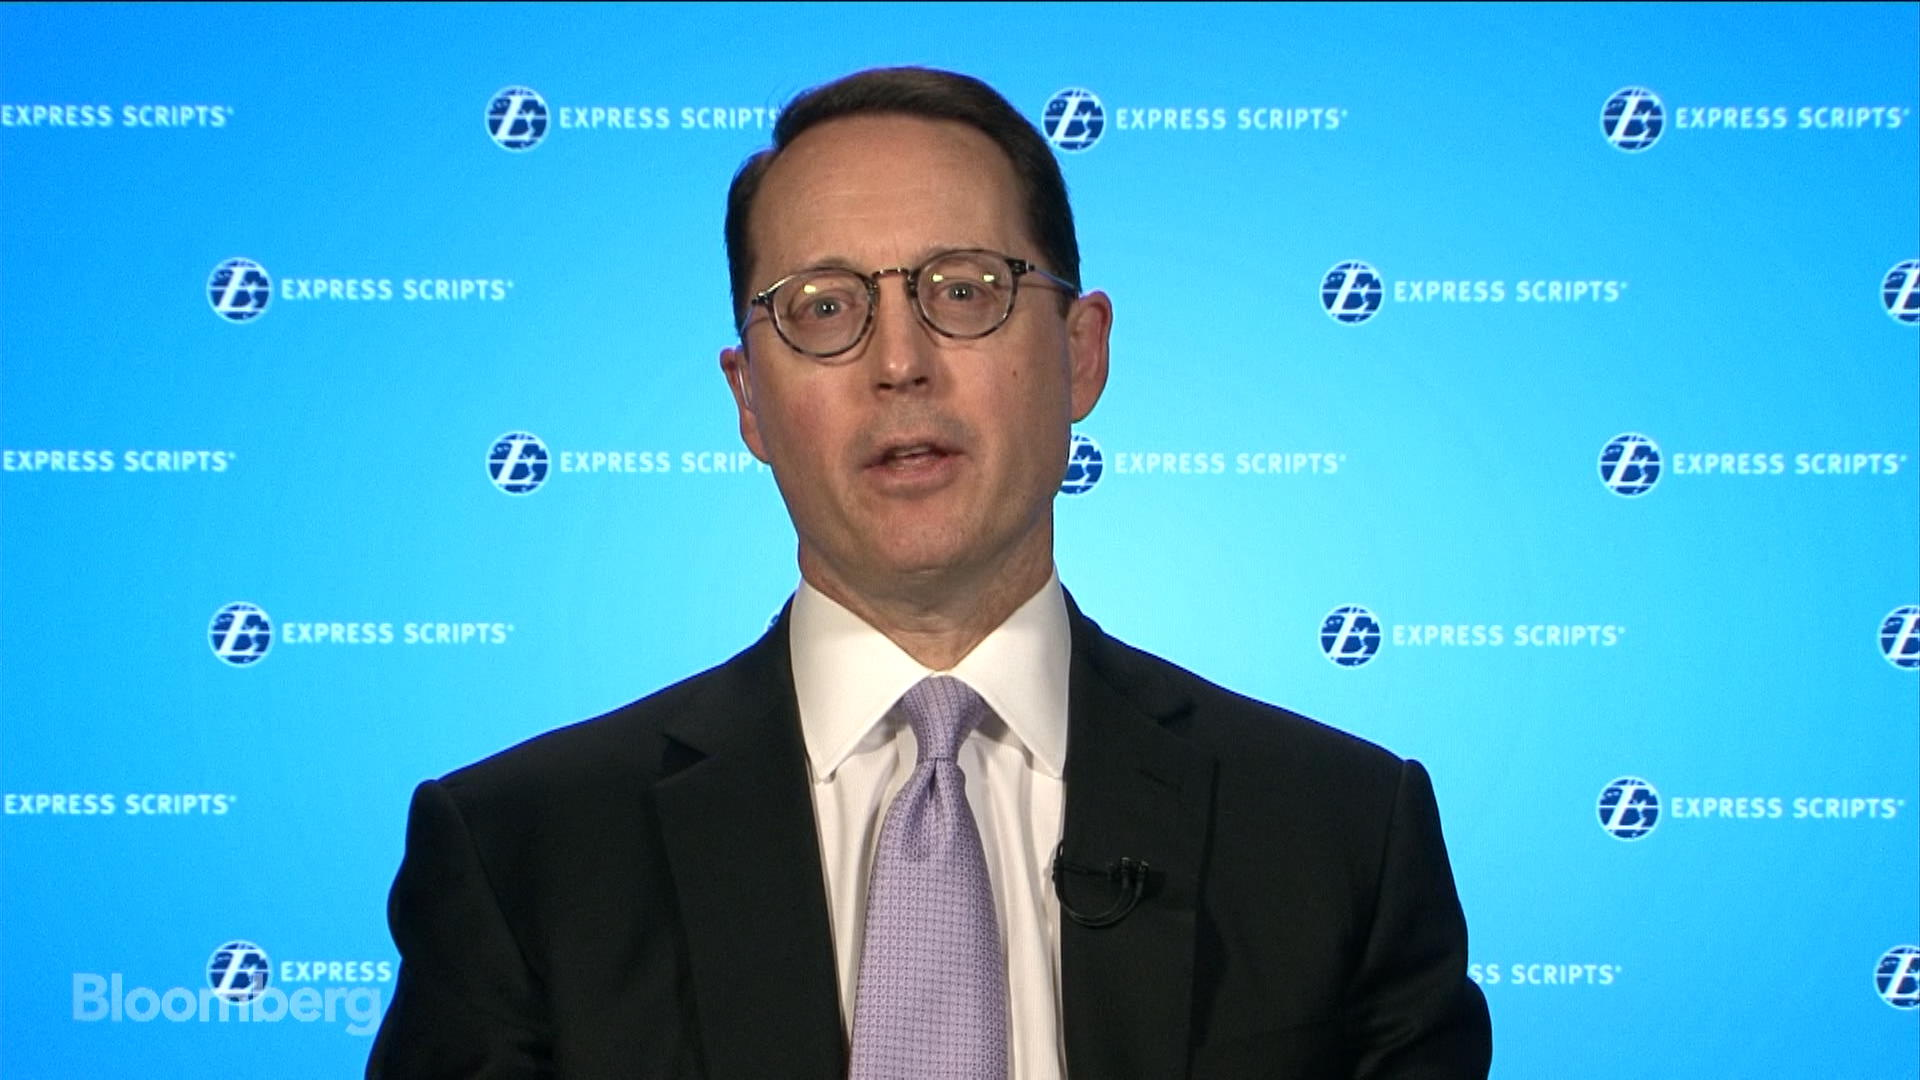 Express Scripts CEO Explains Drug Price Competition ...